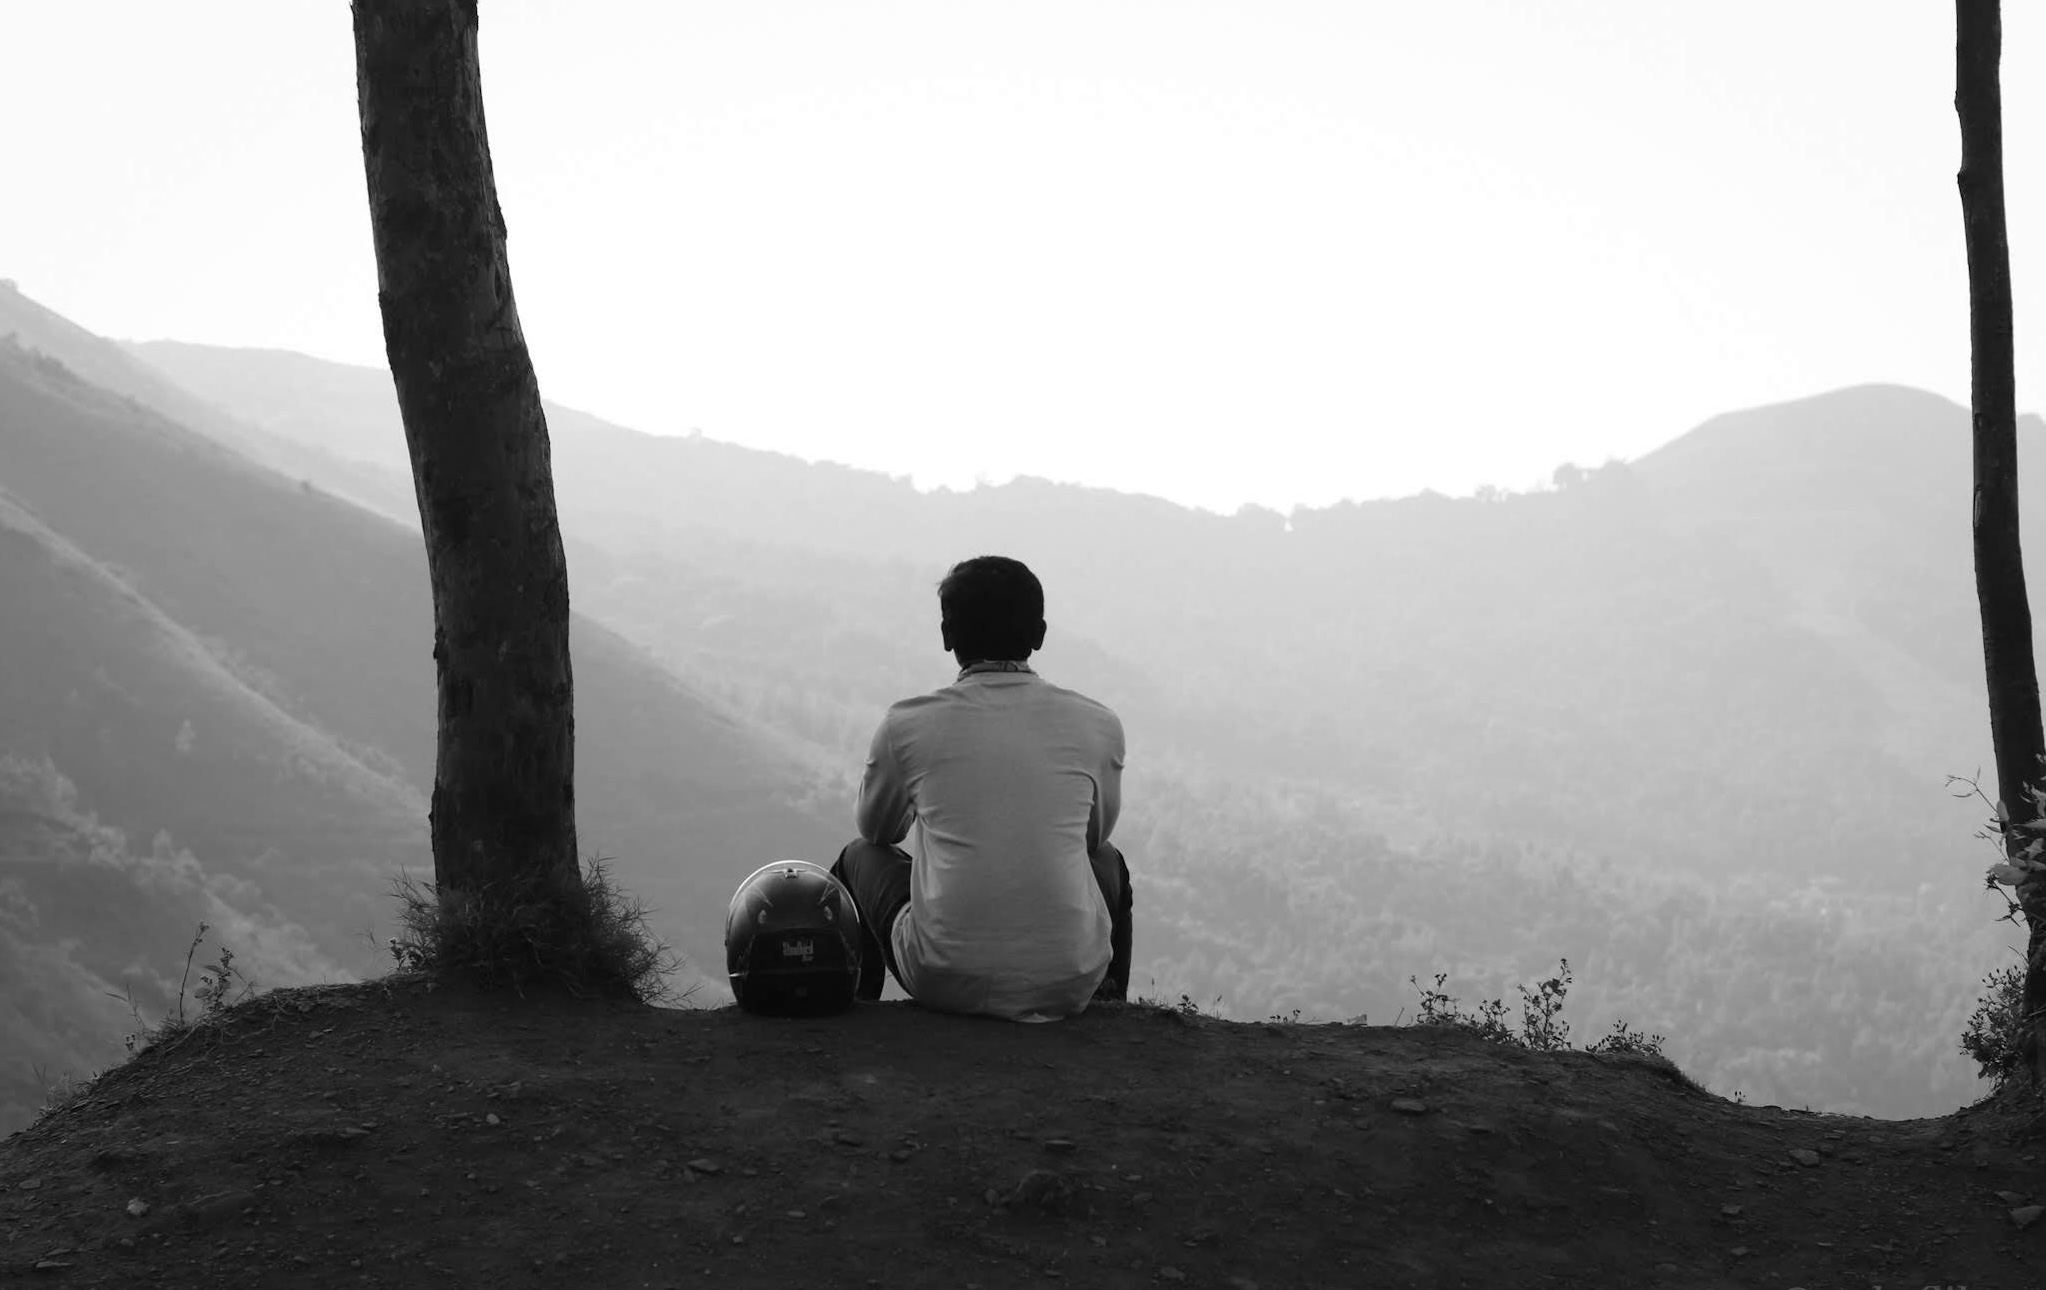 Man Sitting and Looking at the Mountains Scenery